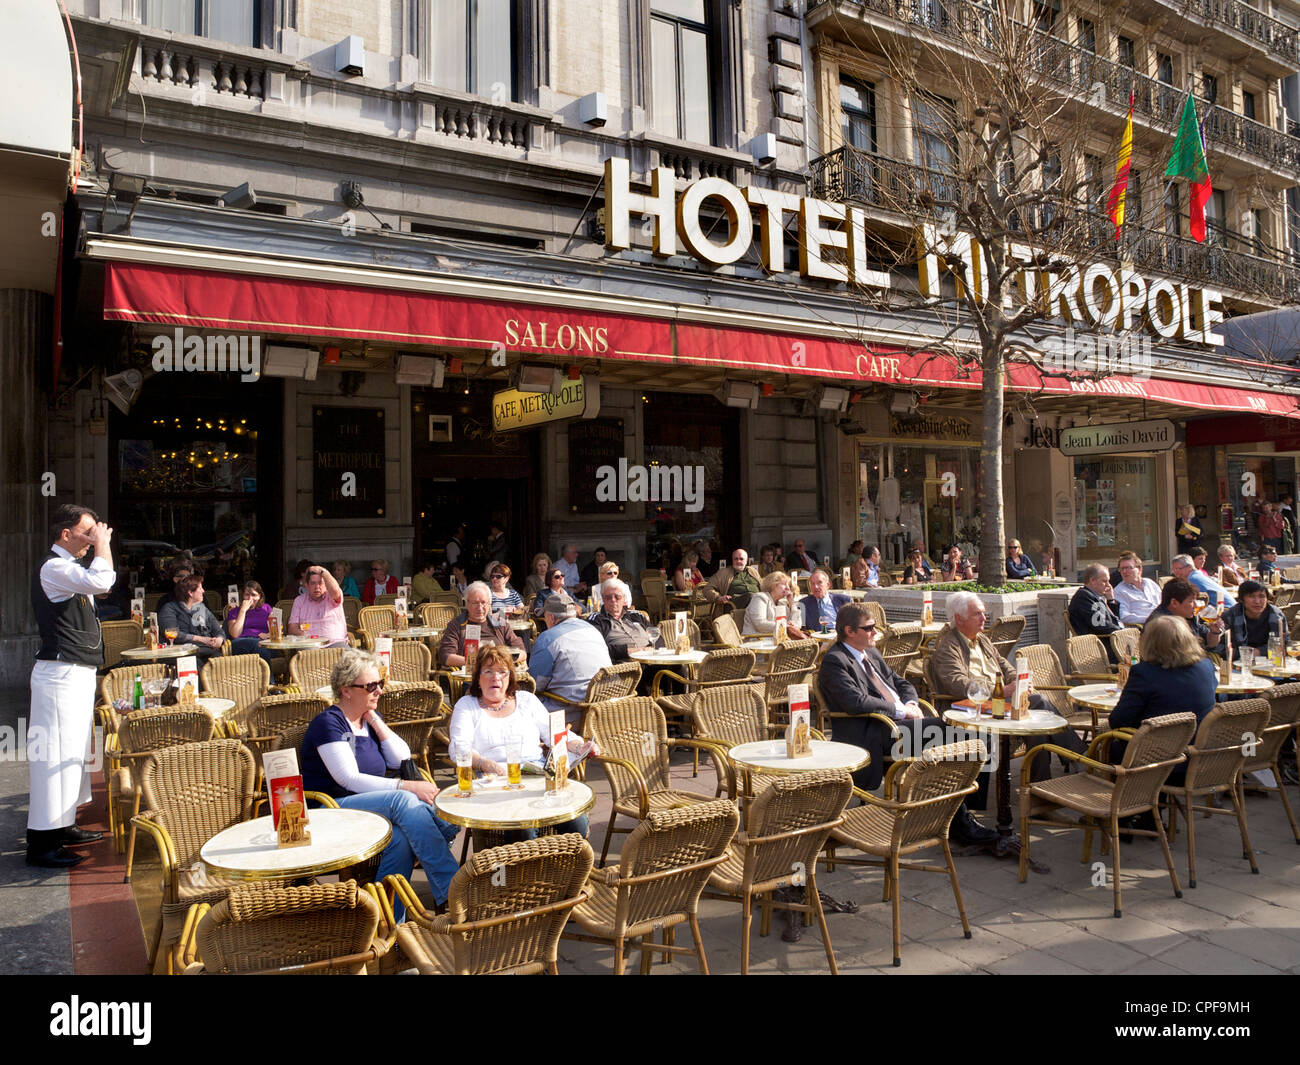 Hotel Metropole in Brussels, Belgium, one of the most famous grand hotels in the Belgian capital. - Stock Image